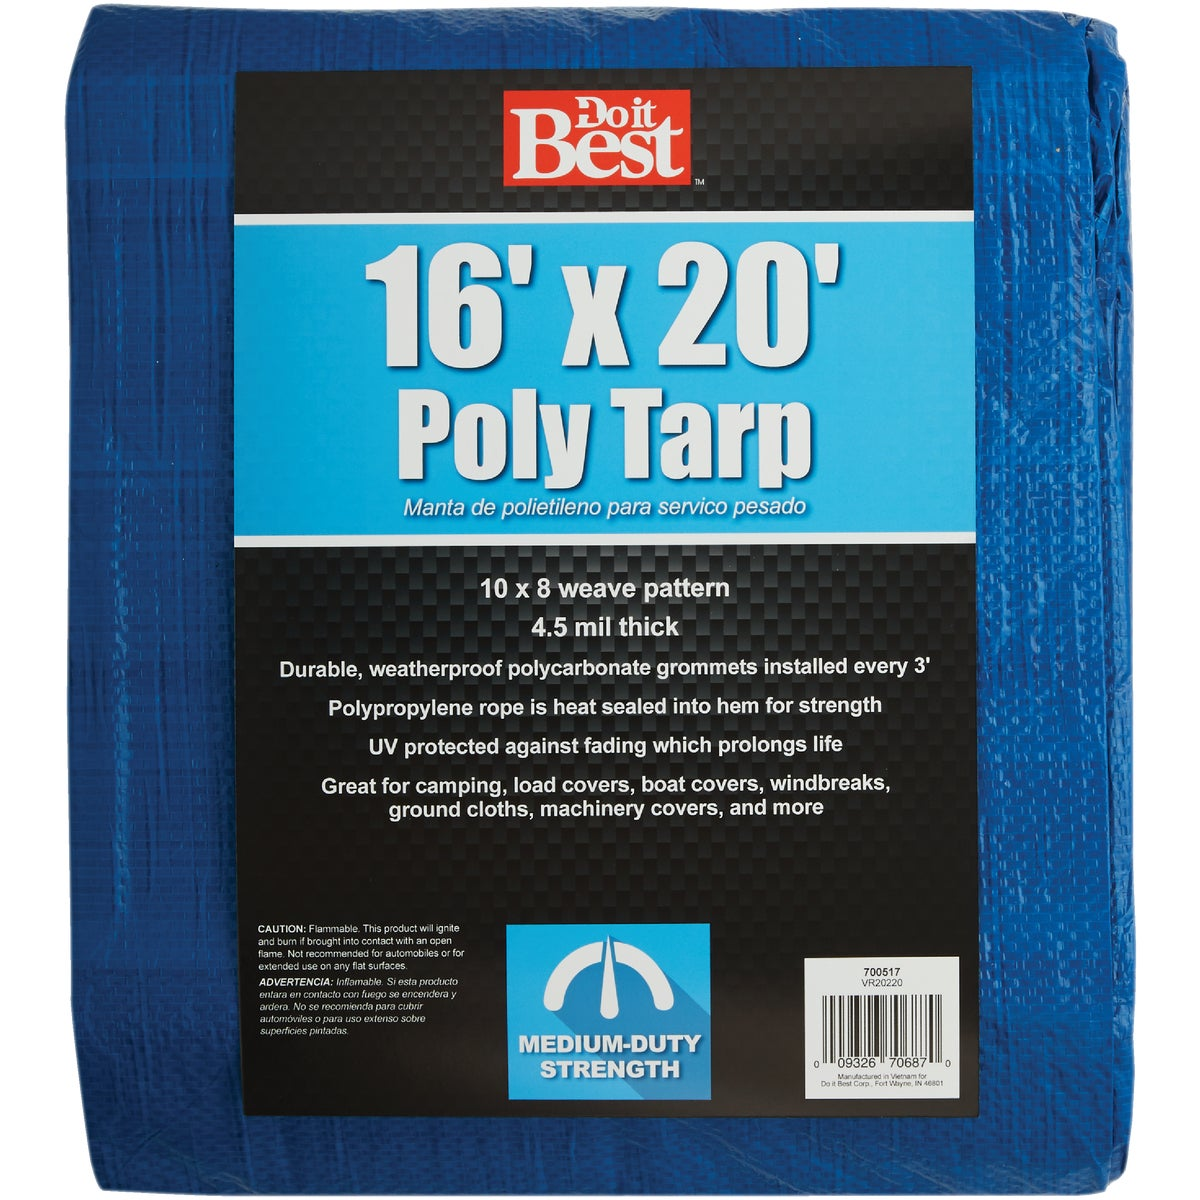 16X20 BLUE MED DUTY TARP - 700517 by Do it Best